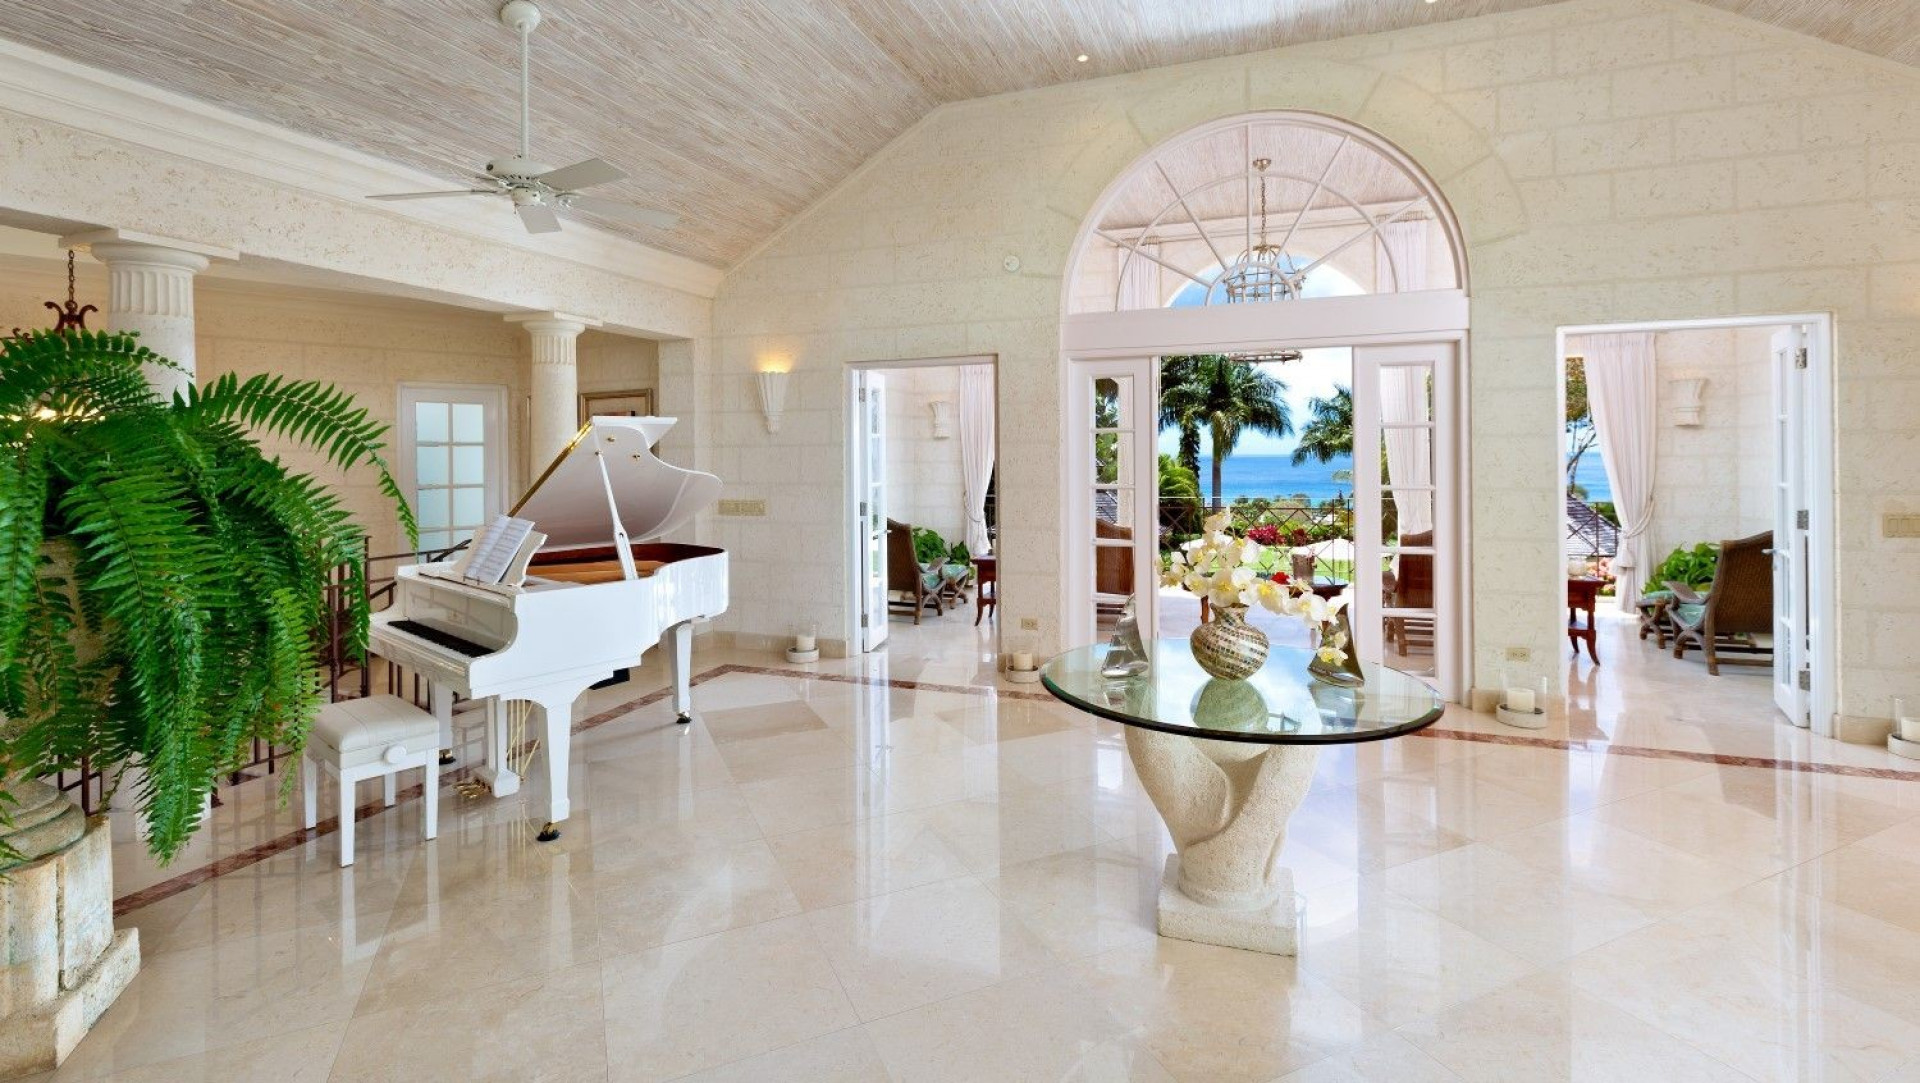 Grand Piano in Marble Room 5 Bedroom Villa Sugar Hill, Barbados with Private Pool, Putting Green & Sea Views